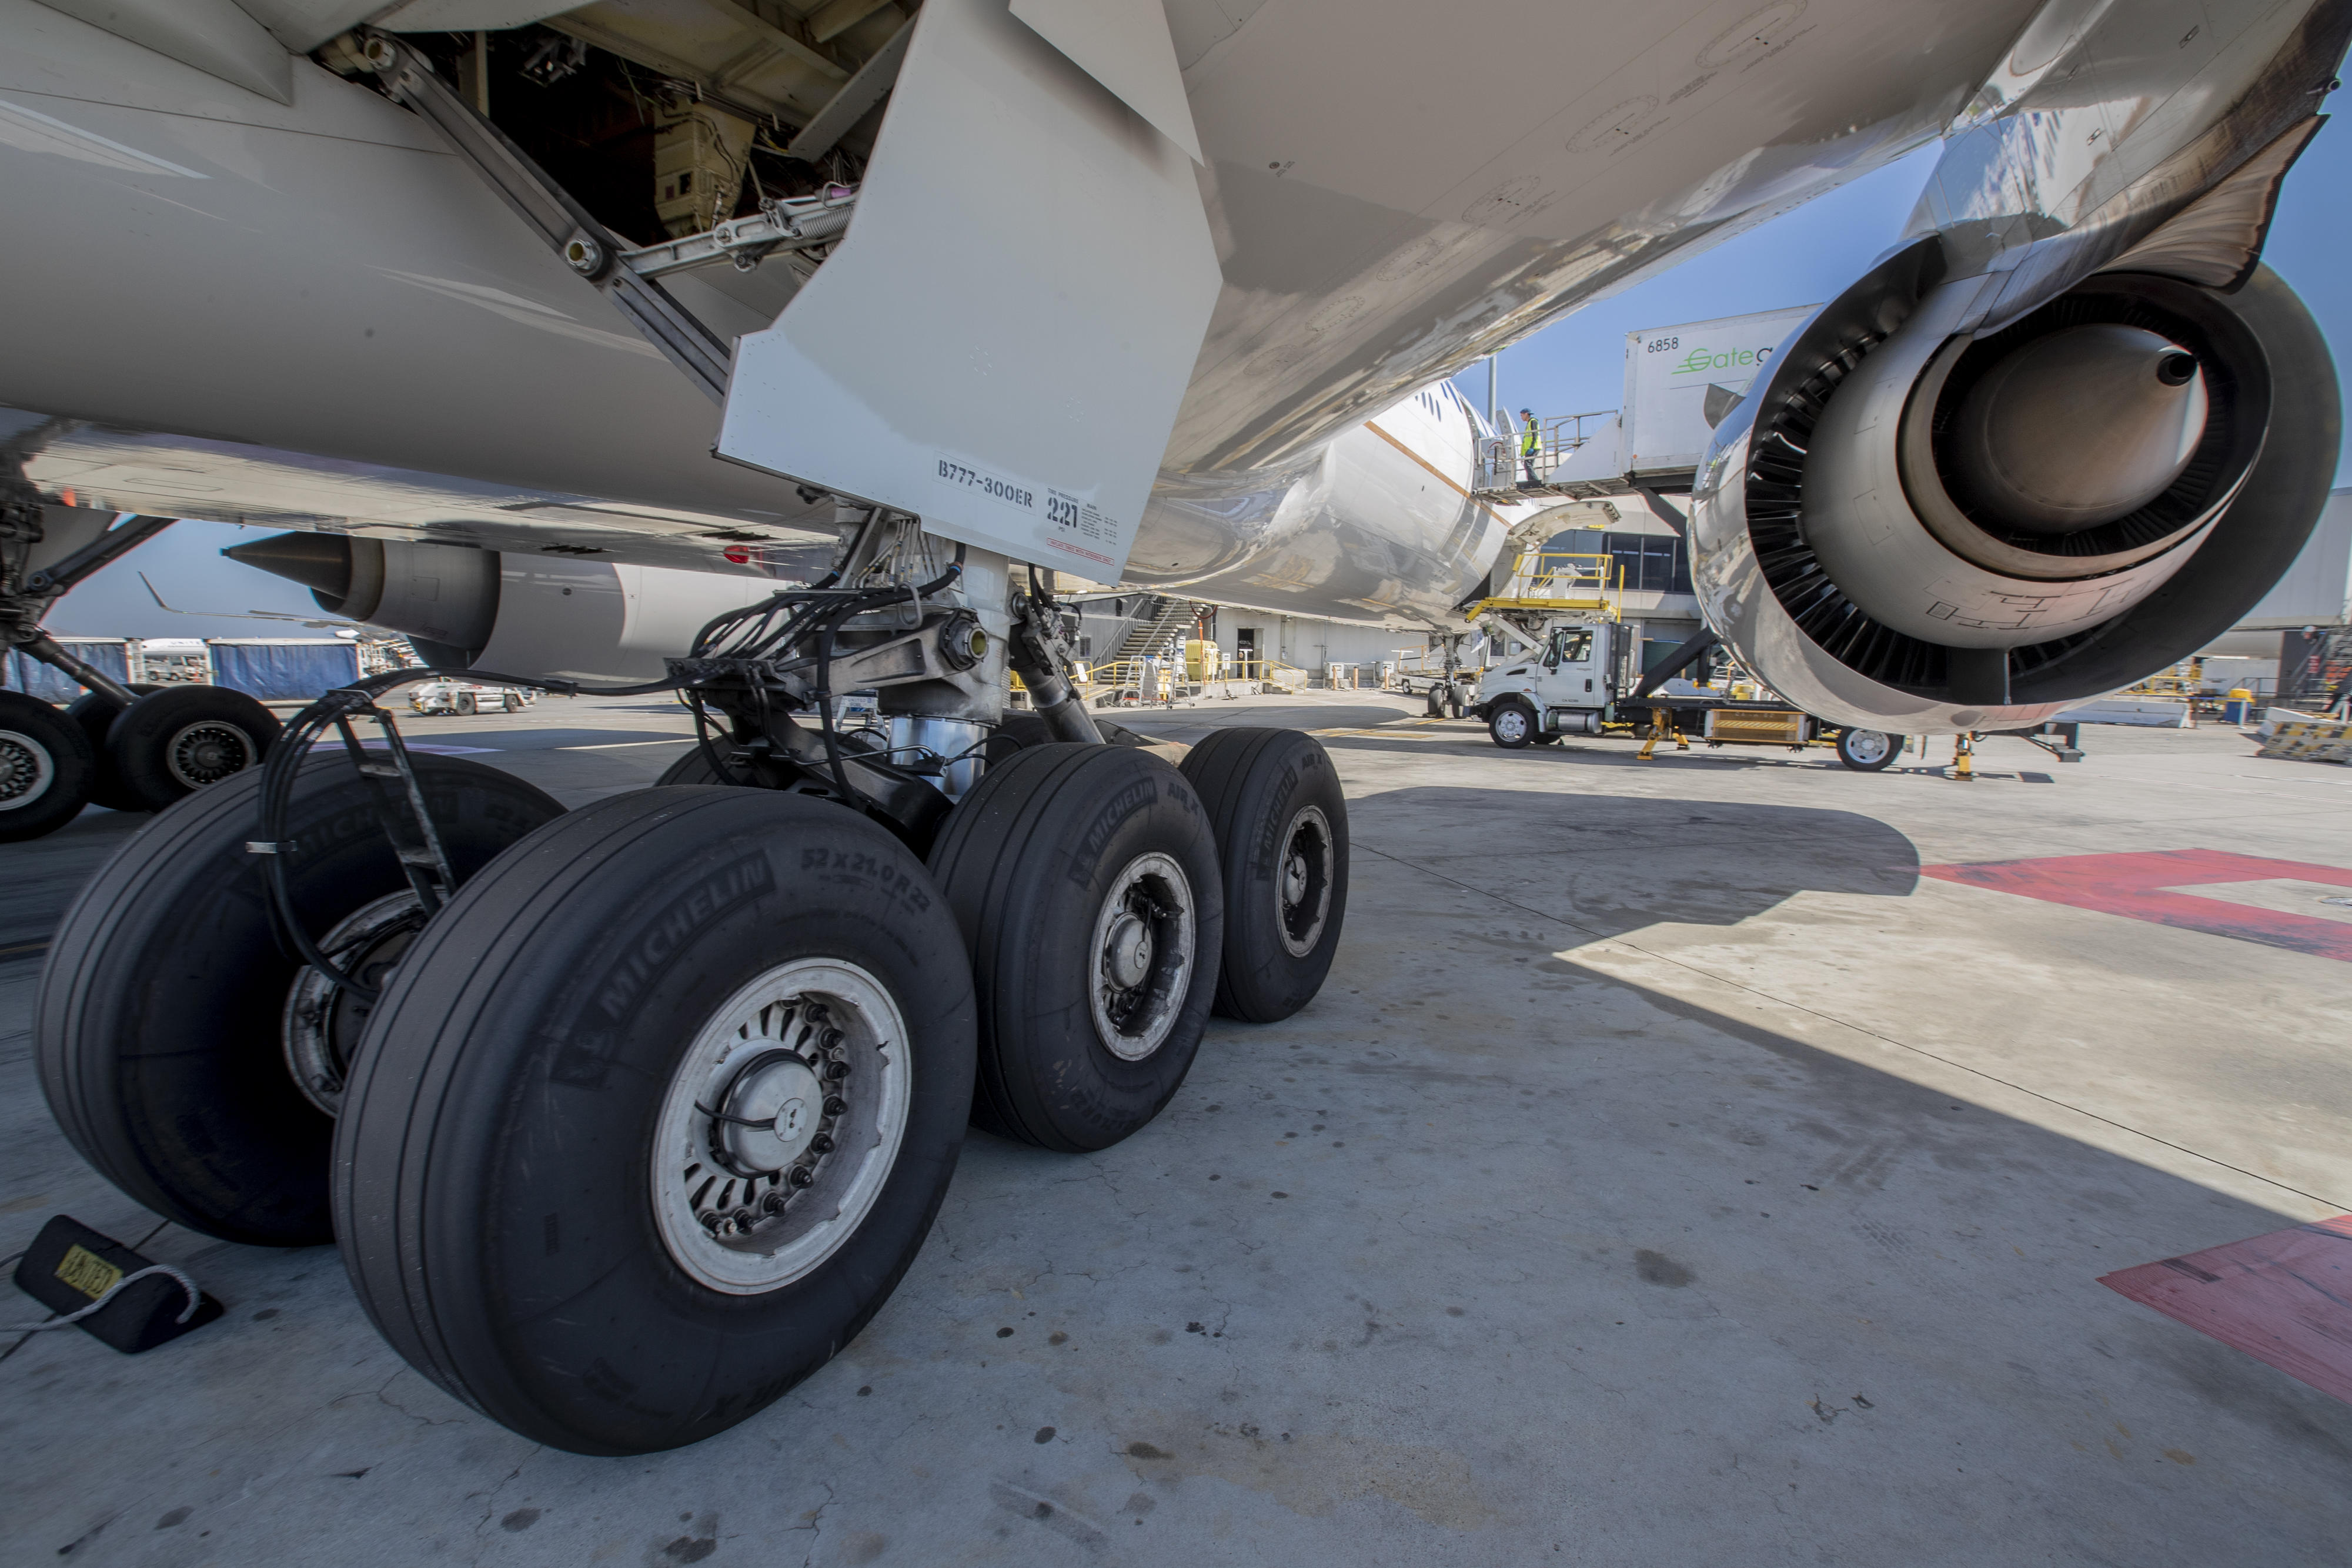 Rubber wedges called chocks are placed around an airplane's landing gear to keep the plane from moving.